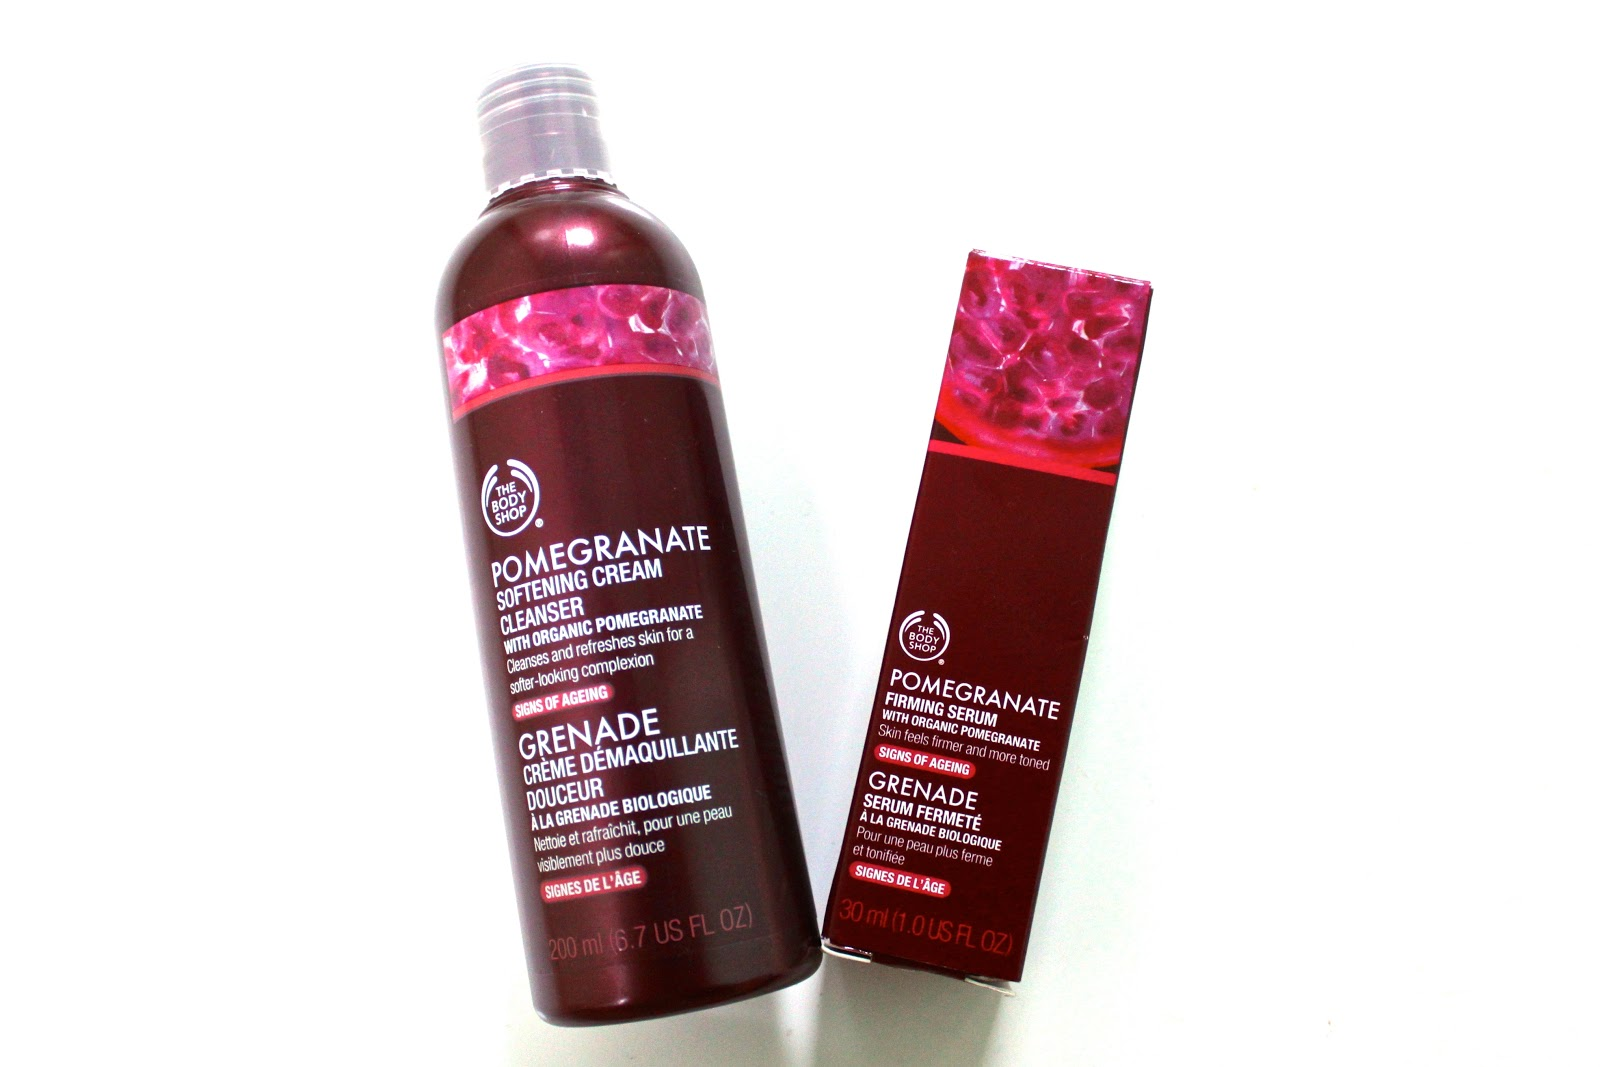 The Pomegranate Anti Ageing Range from The Body Shop